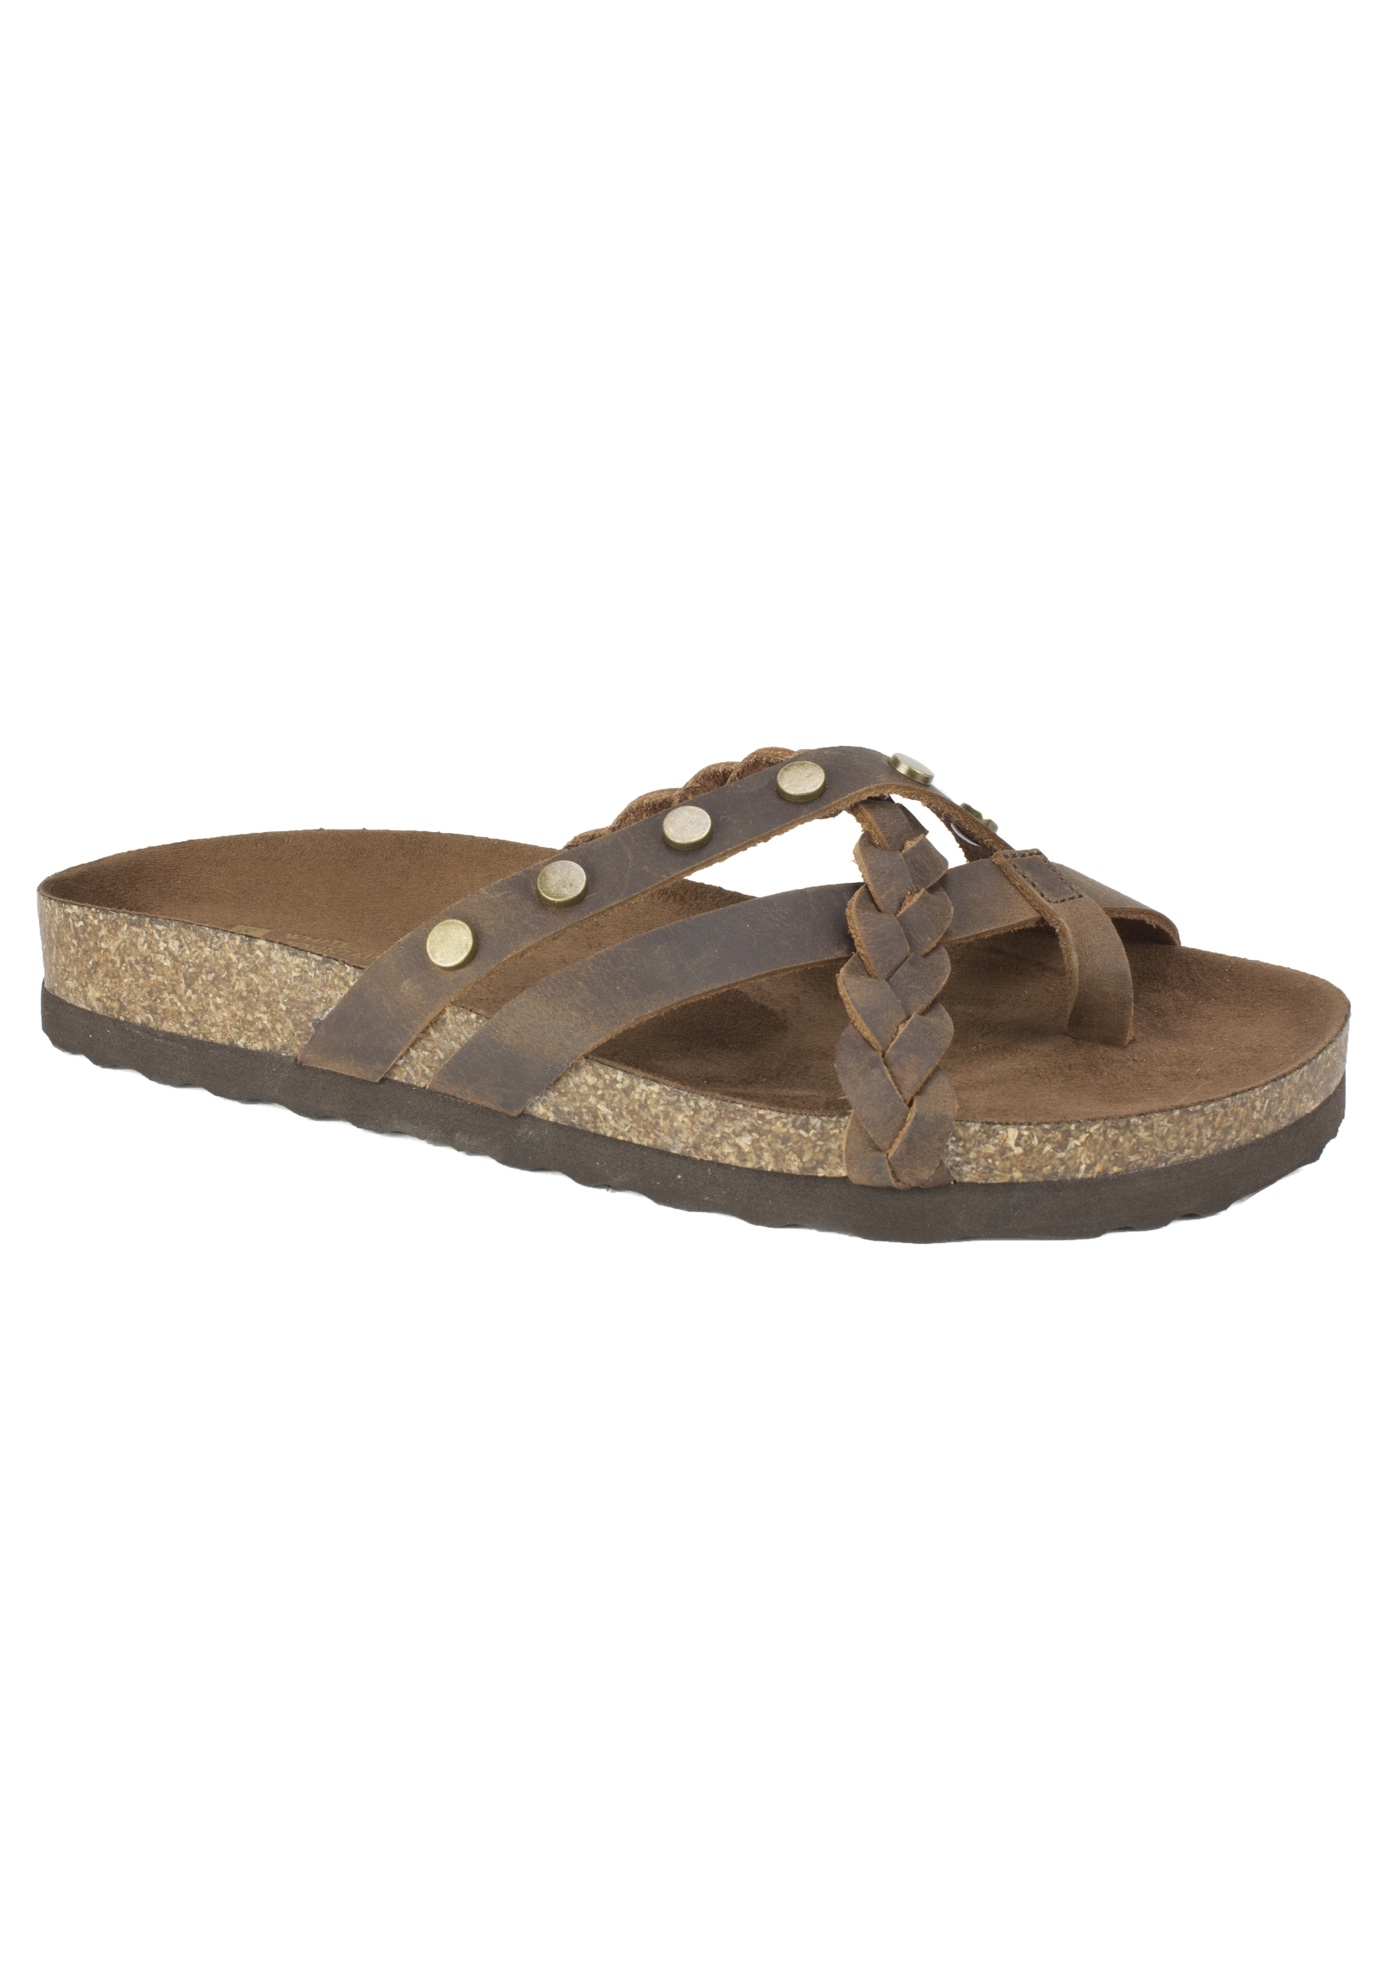 Harvest Sandal by White Mountain,